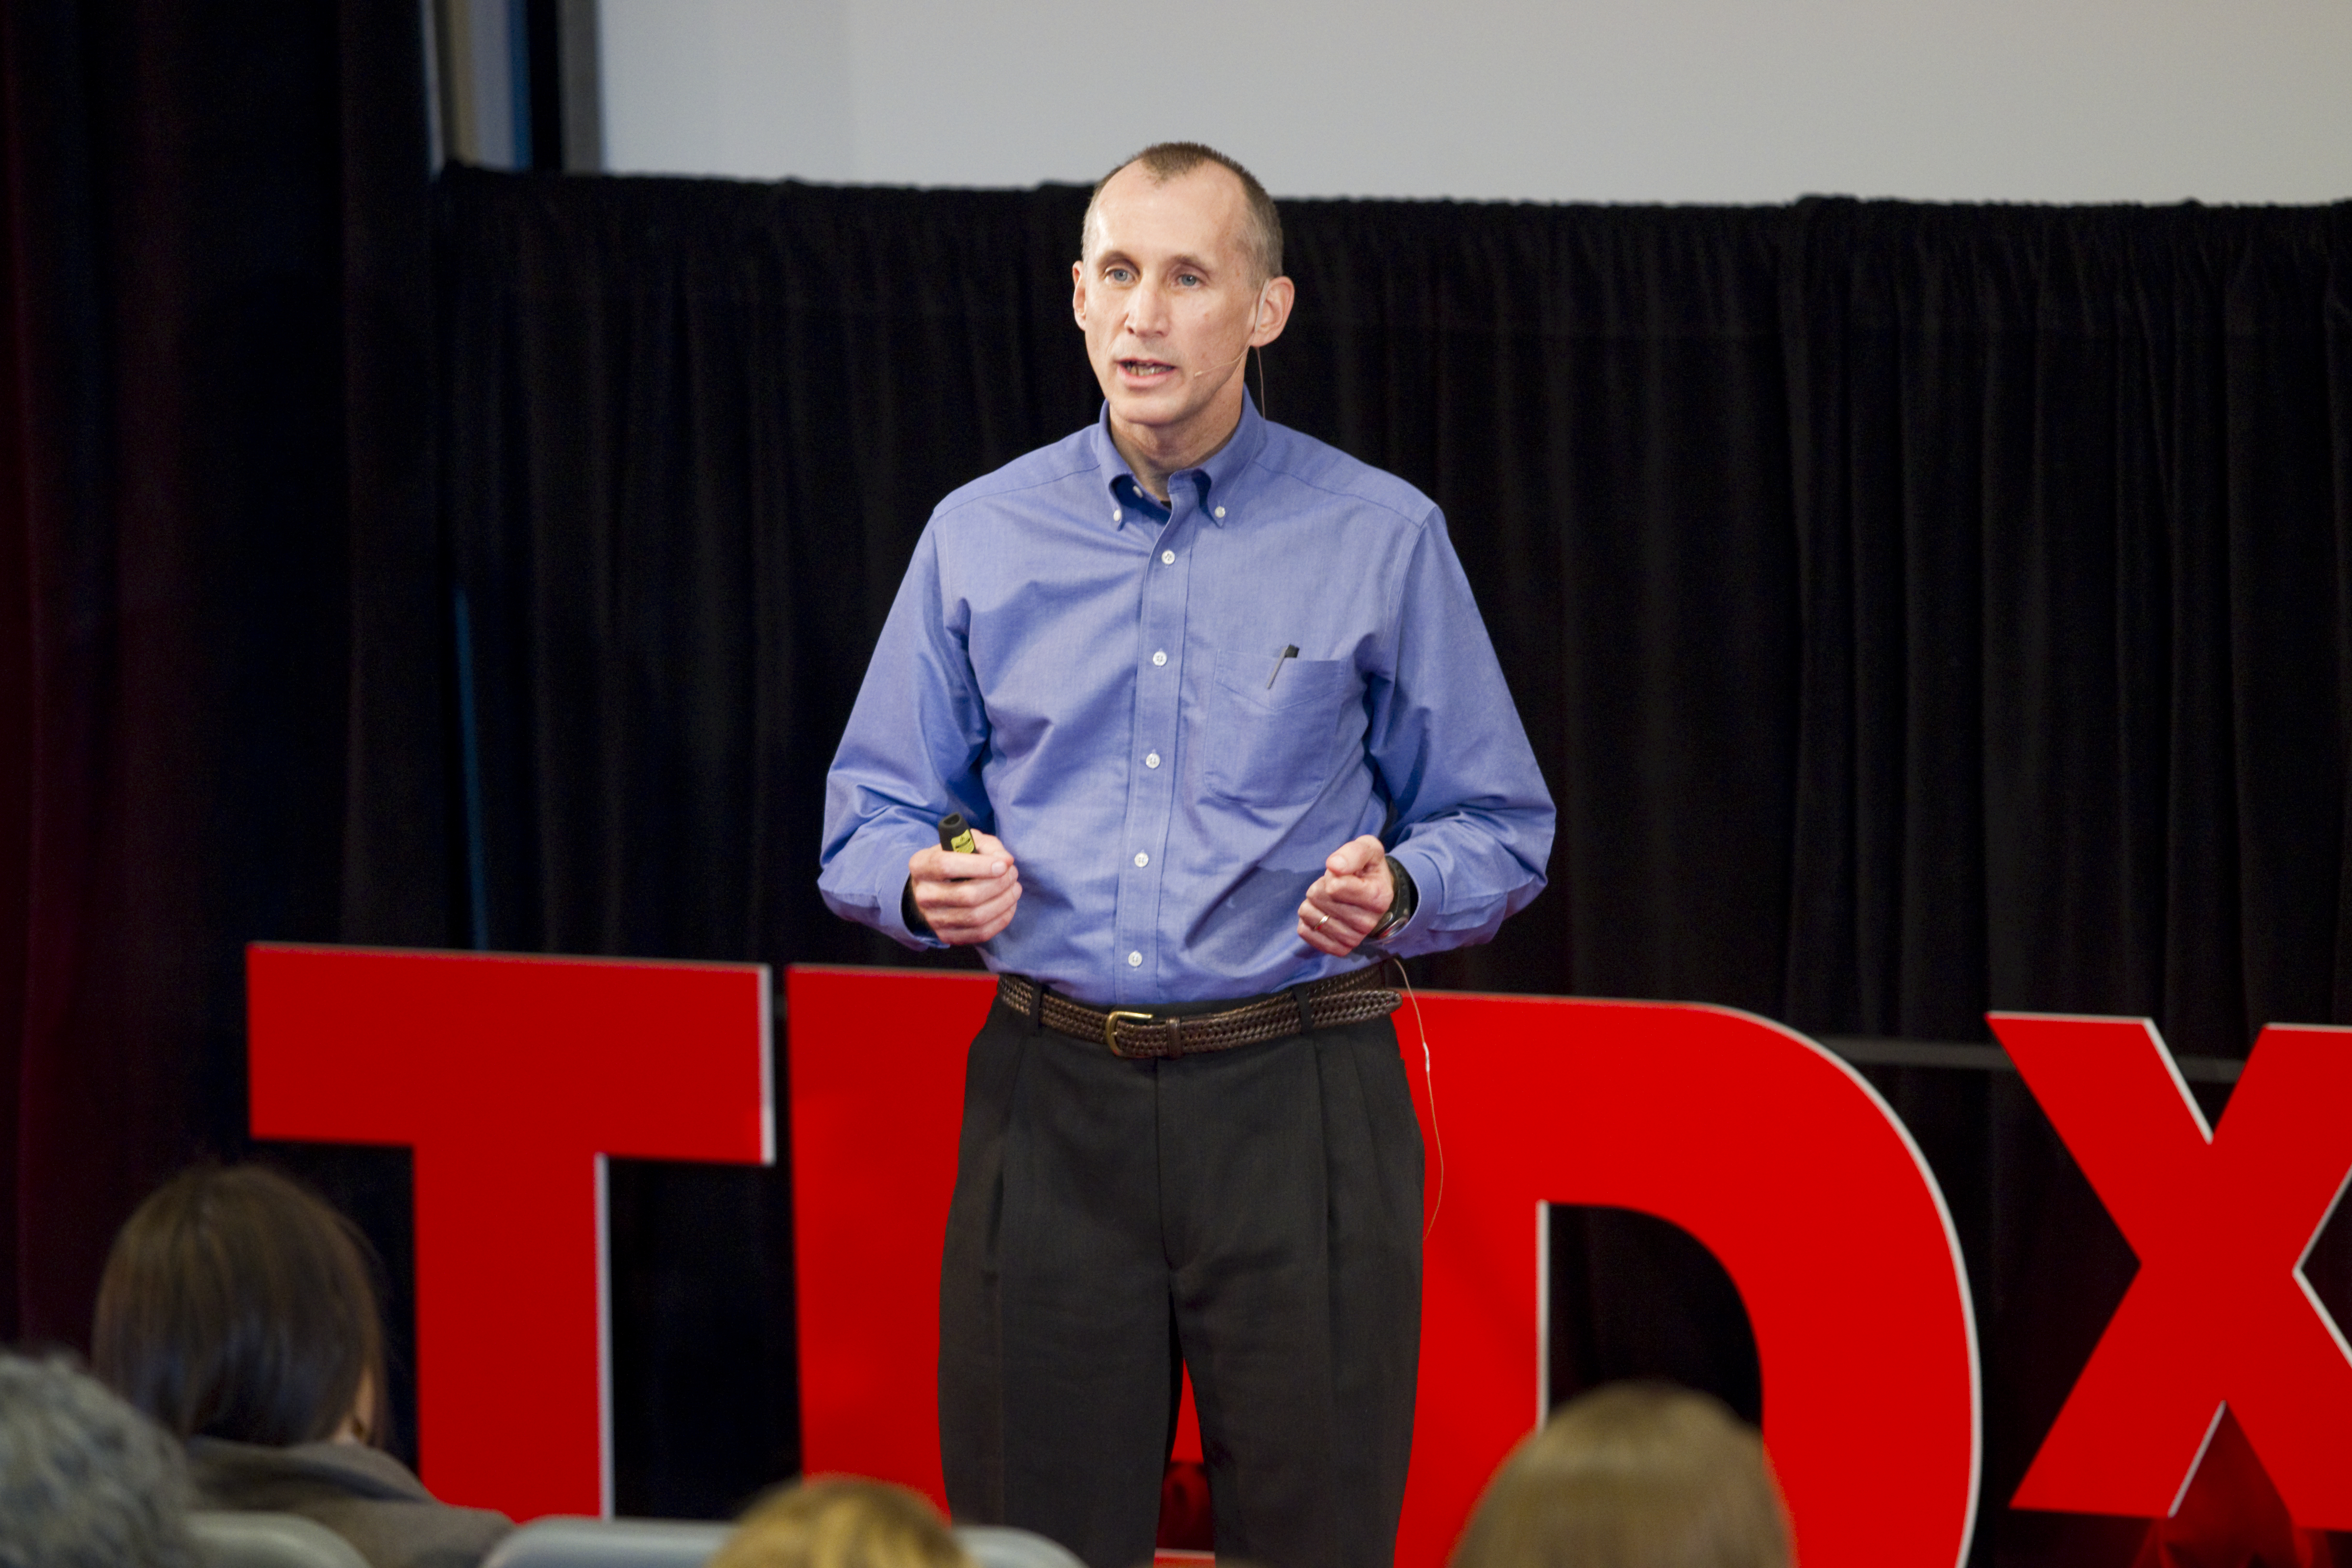 Whalen gave a TEDxUGA presentation on campus in 2013.